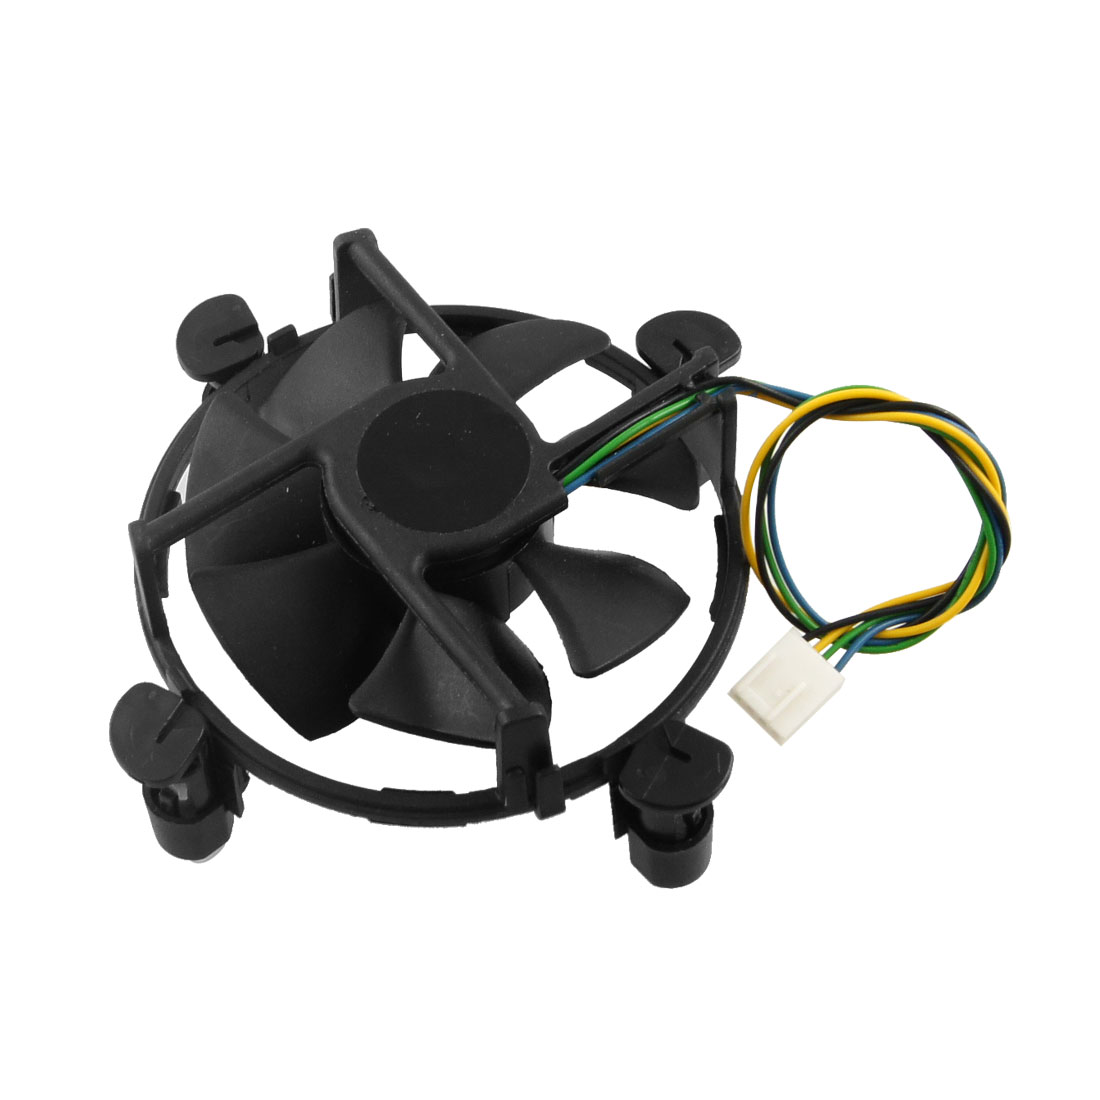 Black Round Shape 4 Pins Connector CPU Cooler DC Fan for Intel LGA 775